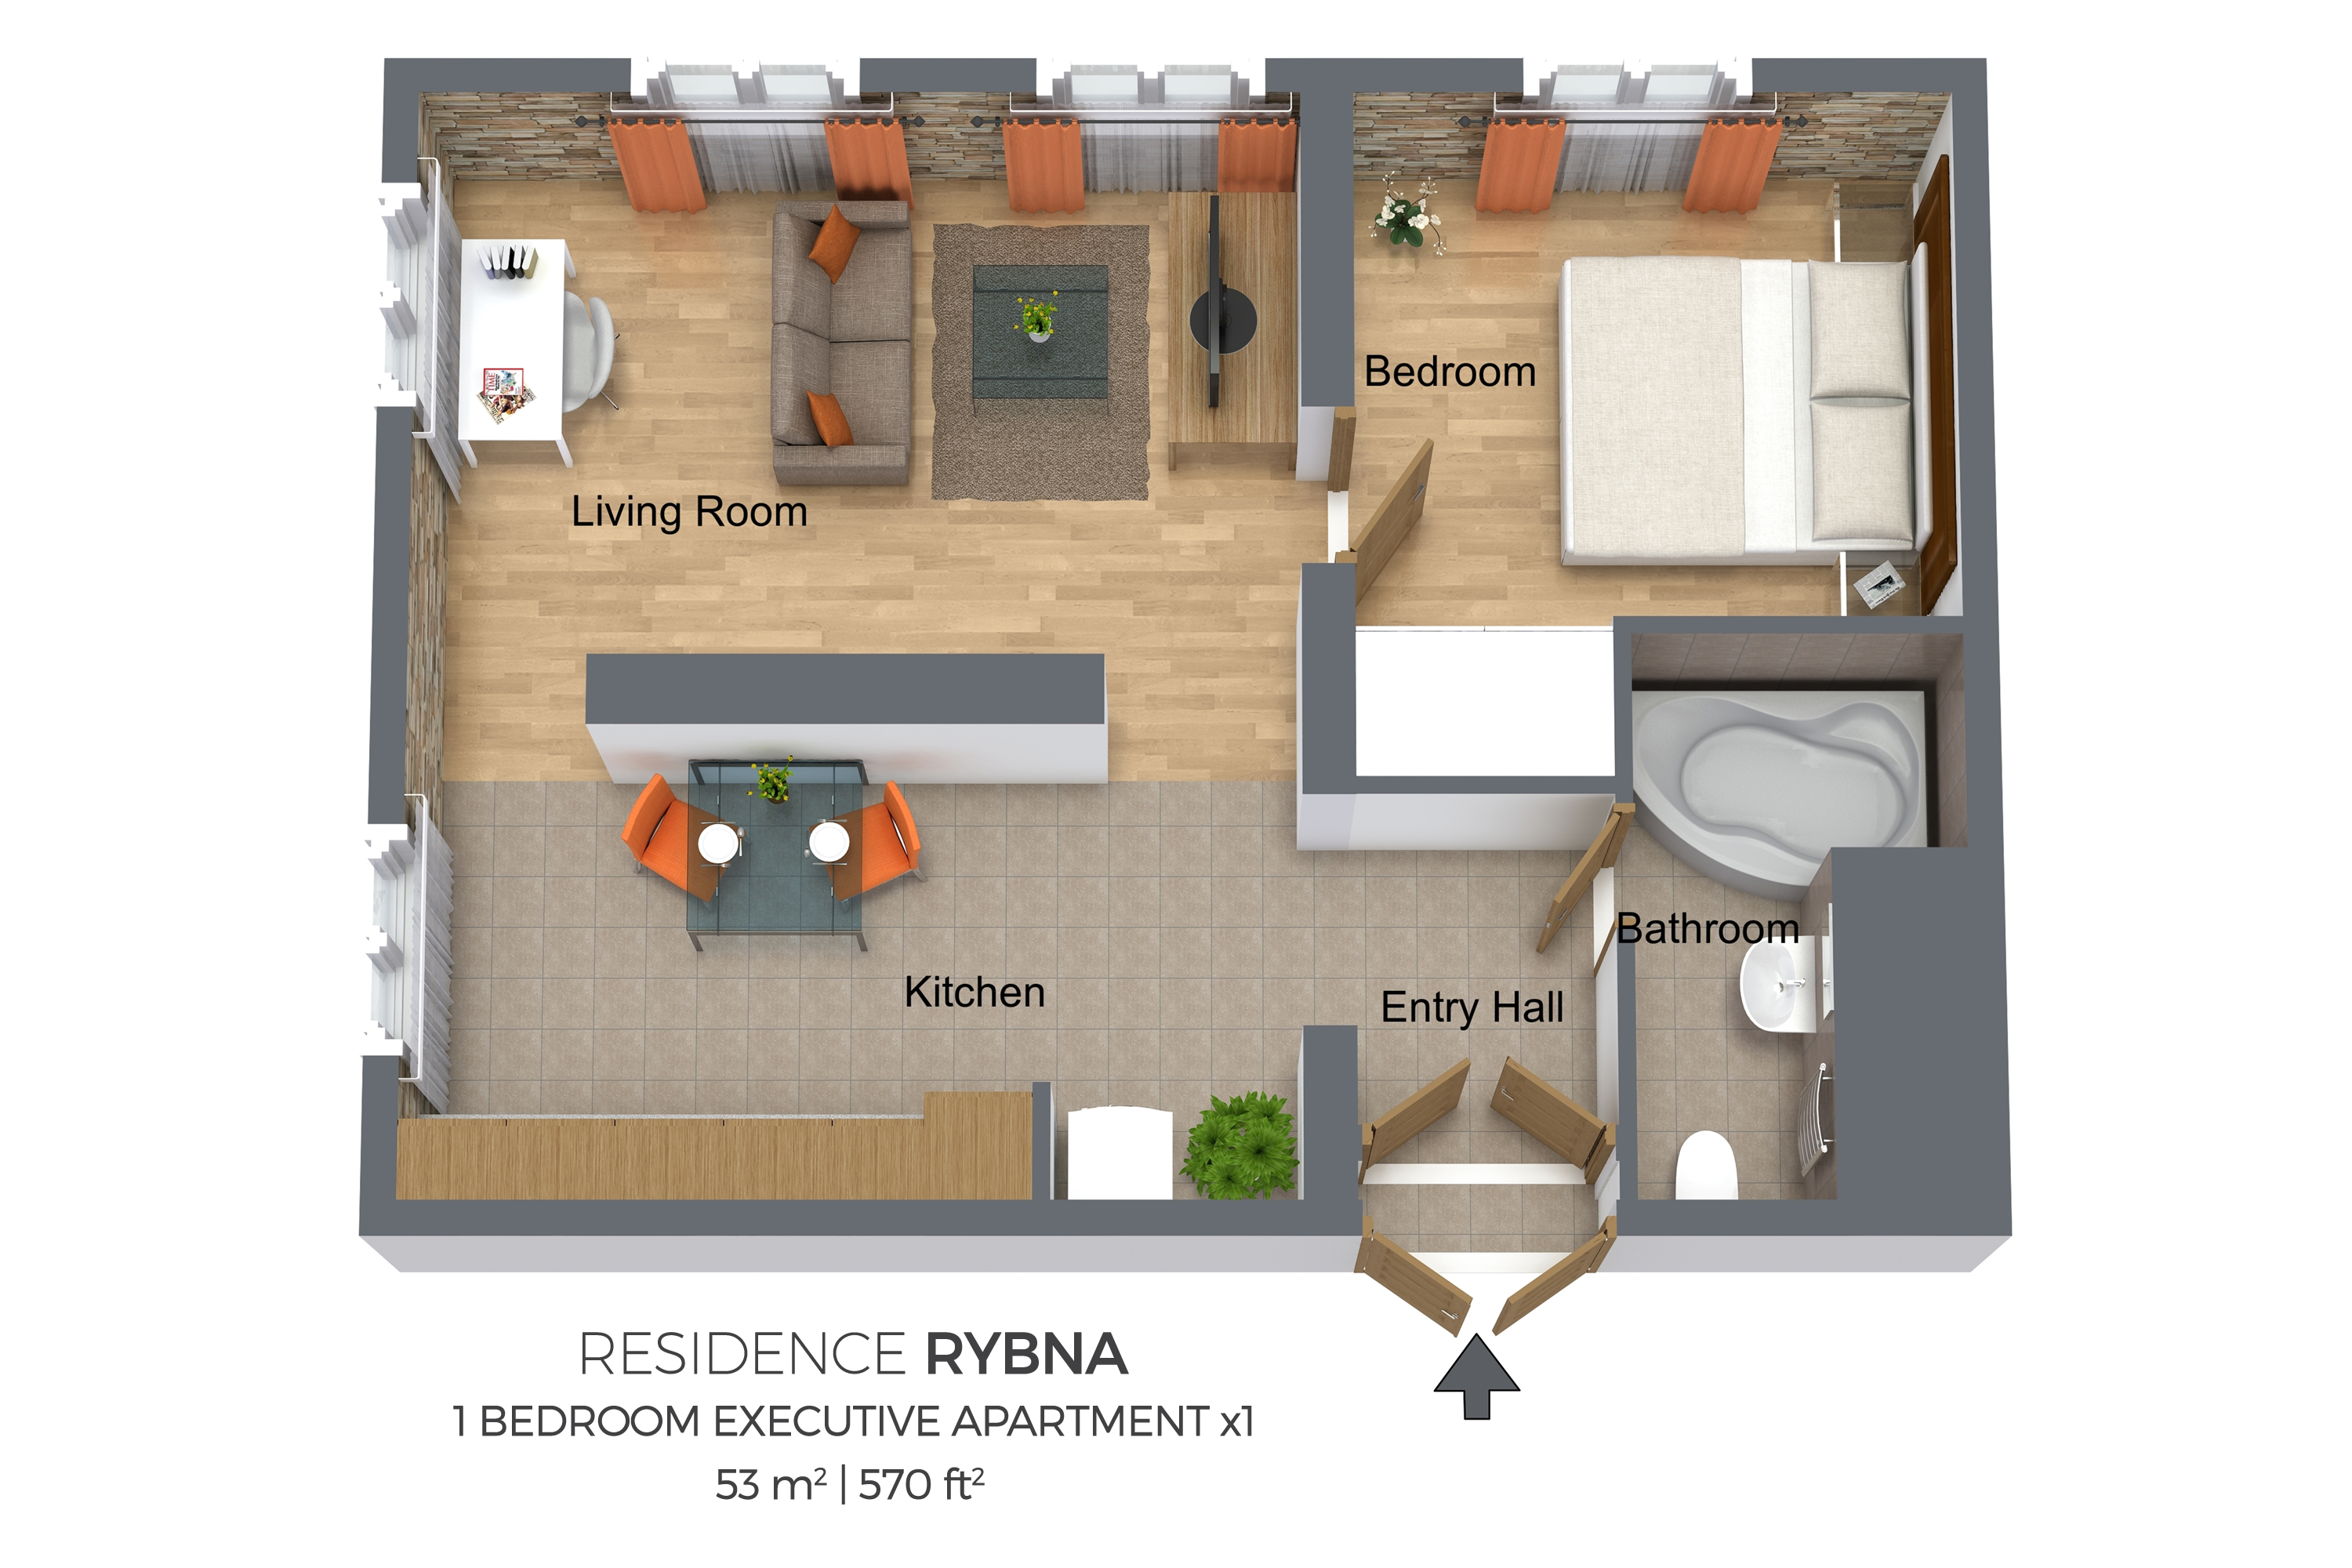 1 bed executive floor plan at Residence Rybna Apartments